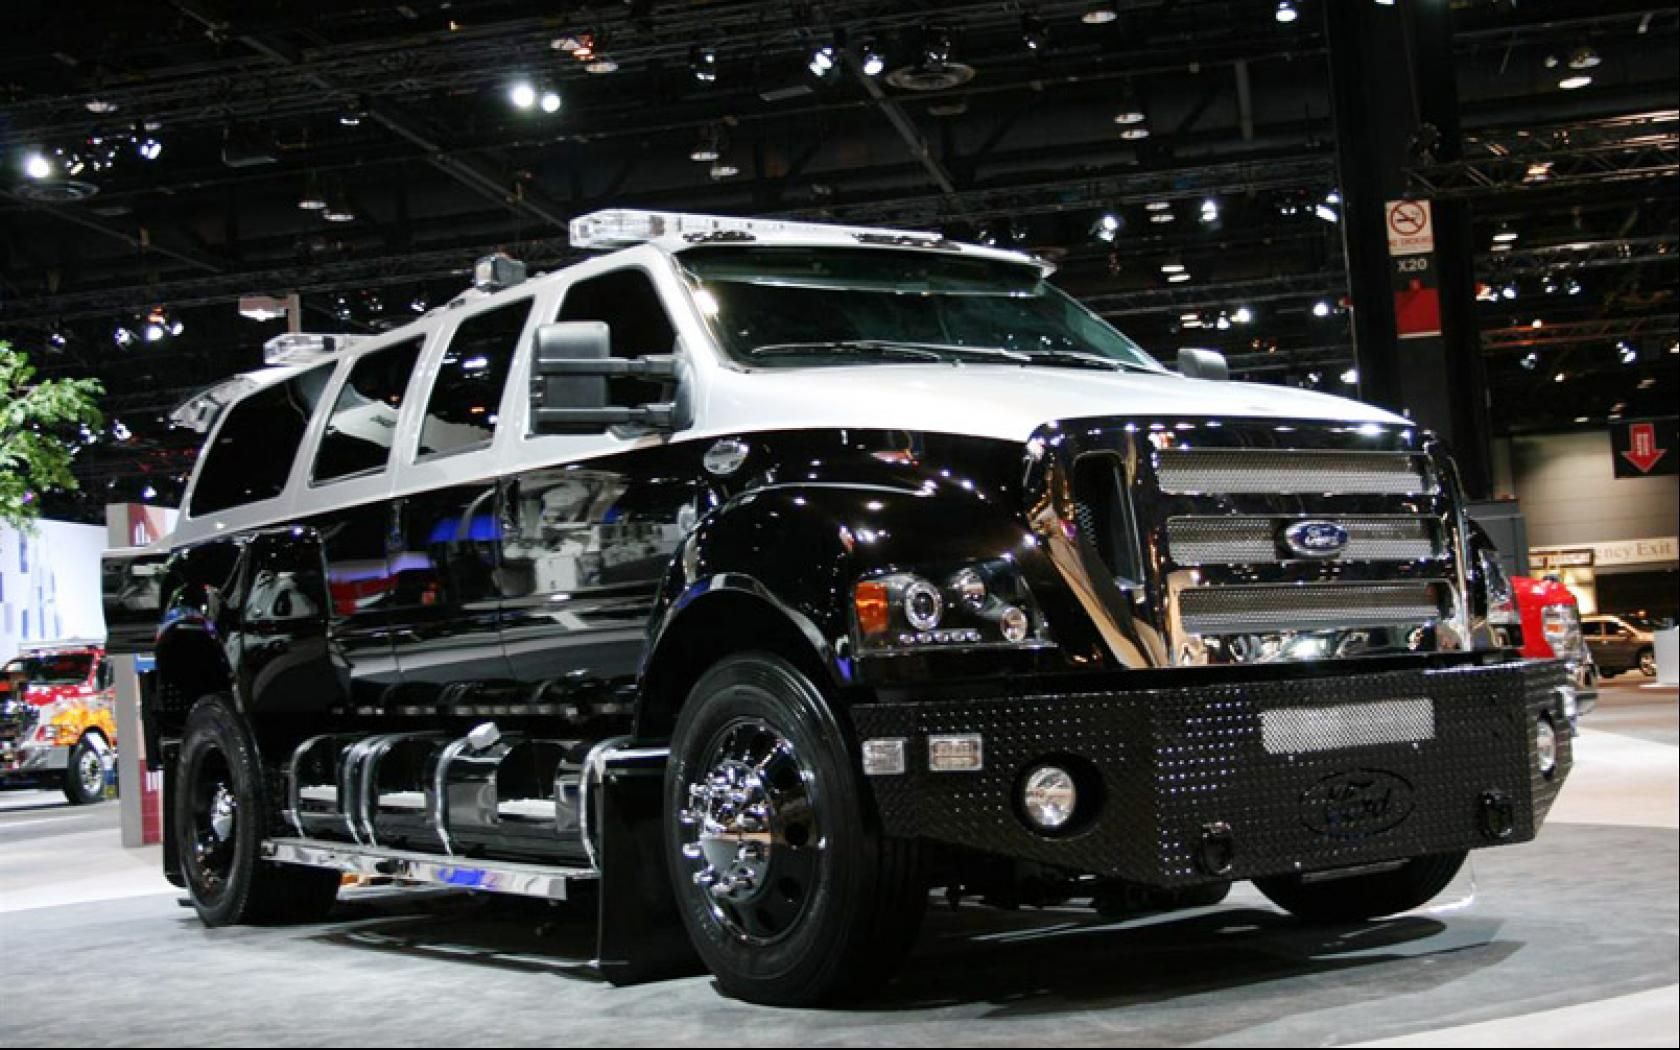 The ford f 650 concept truck is big the ford f 650 concept truck is - Ford F 650 Xl Super Duty Hd Picutre 1680x1050 Widescreen Hd Wallpaper